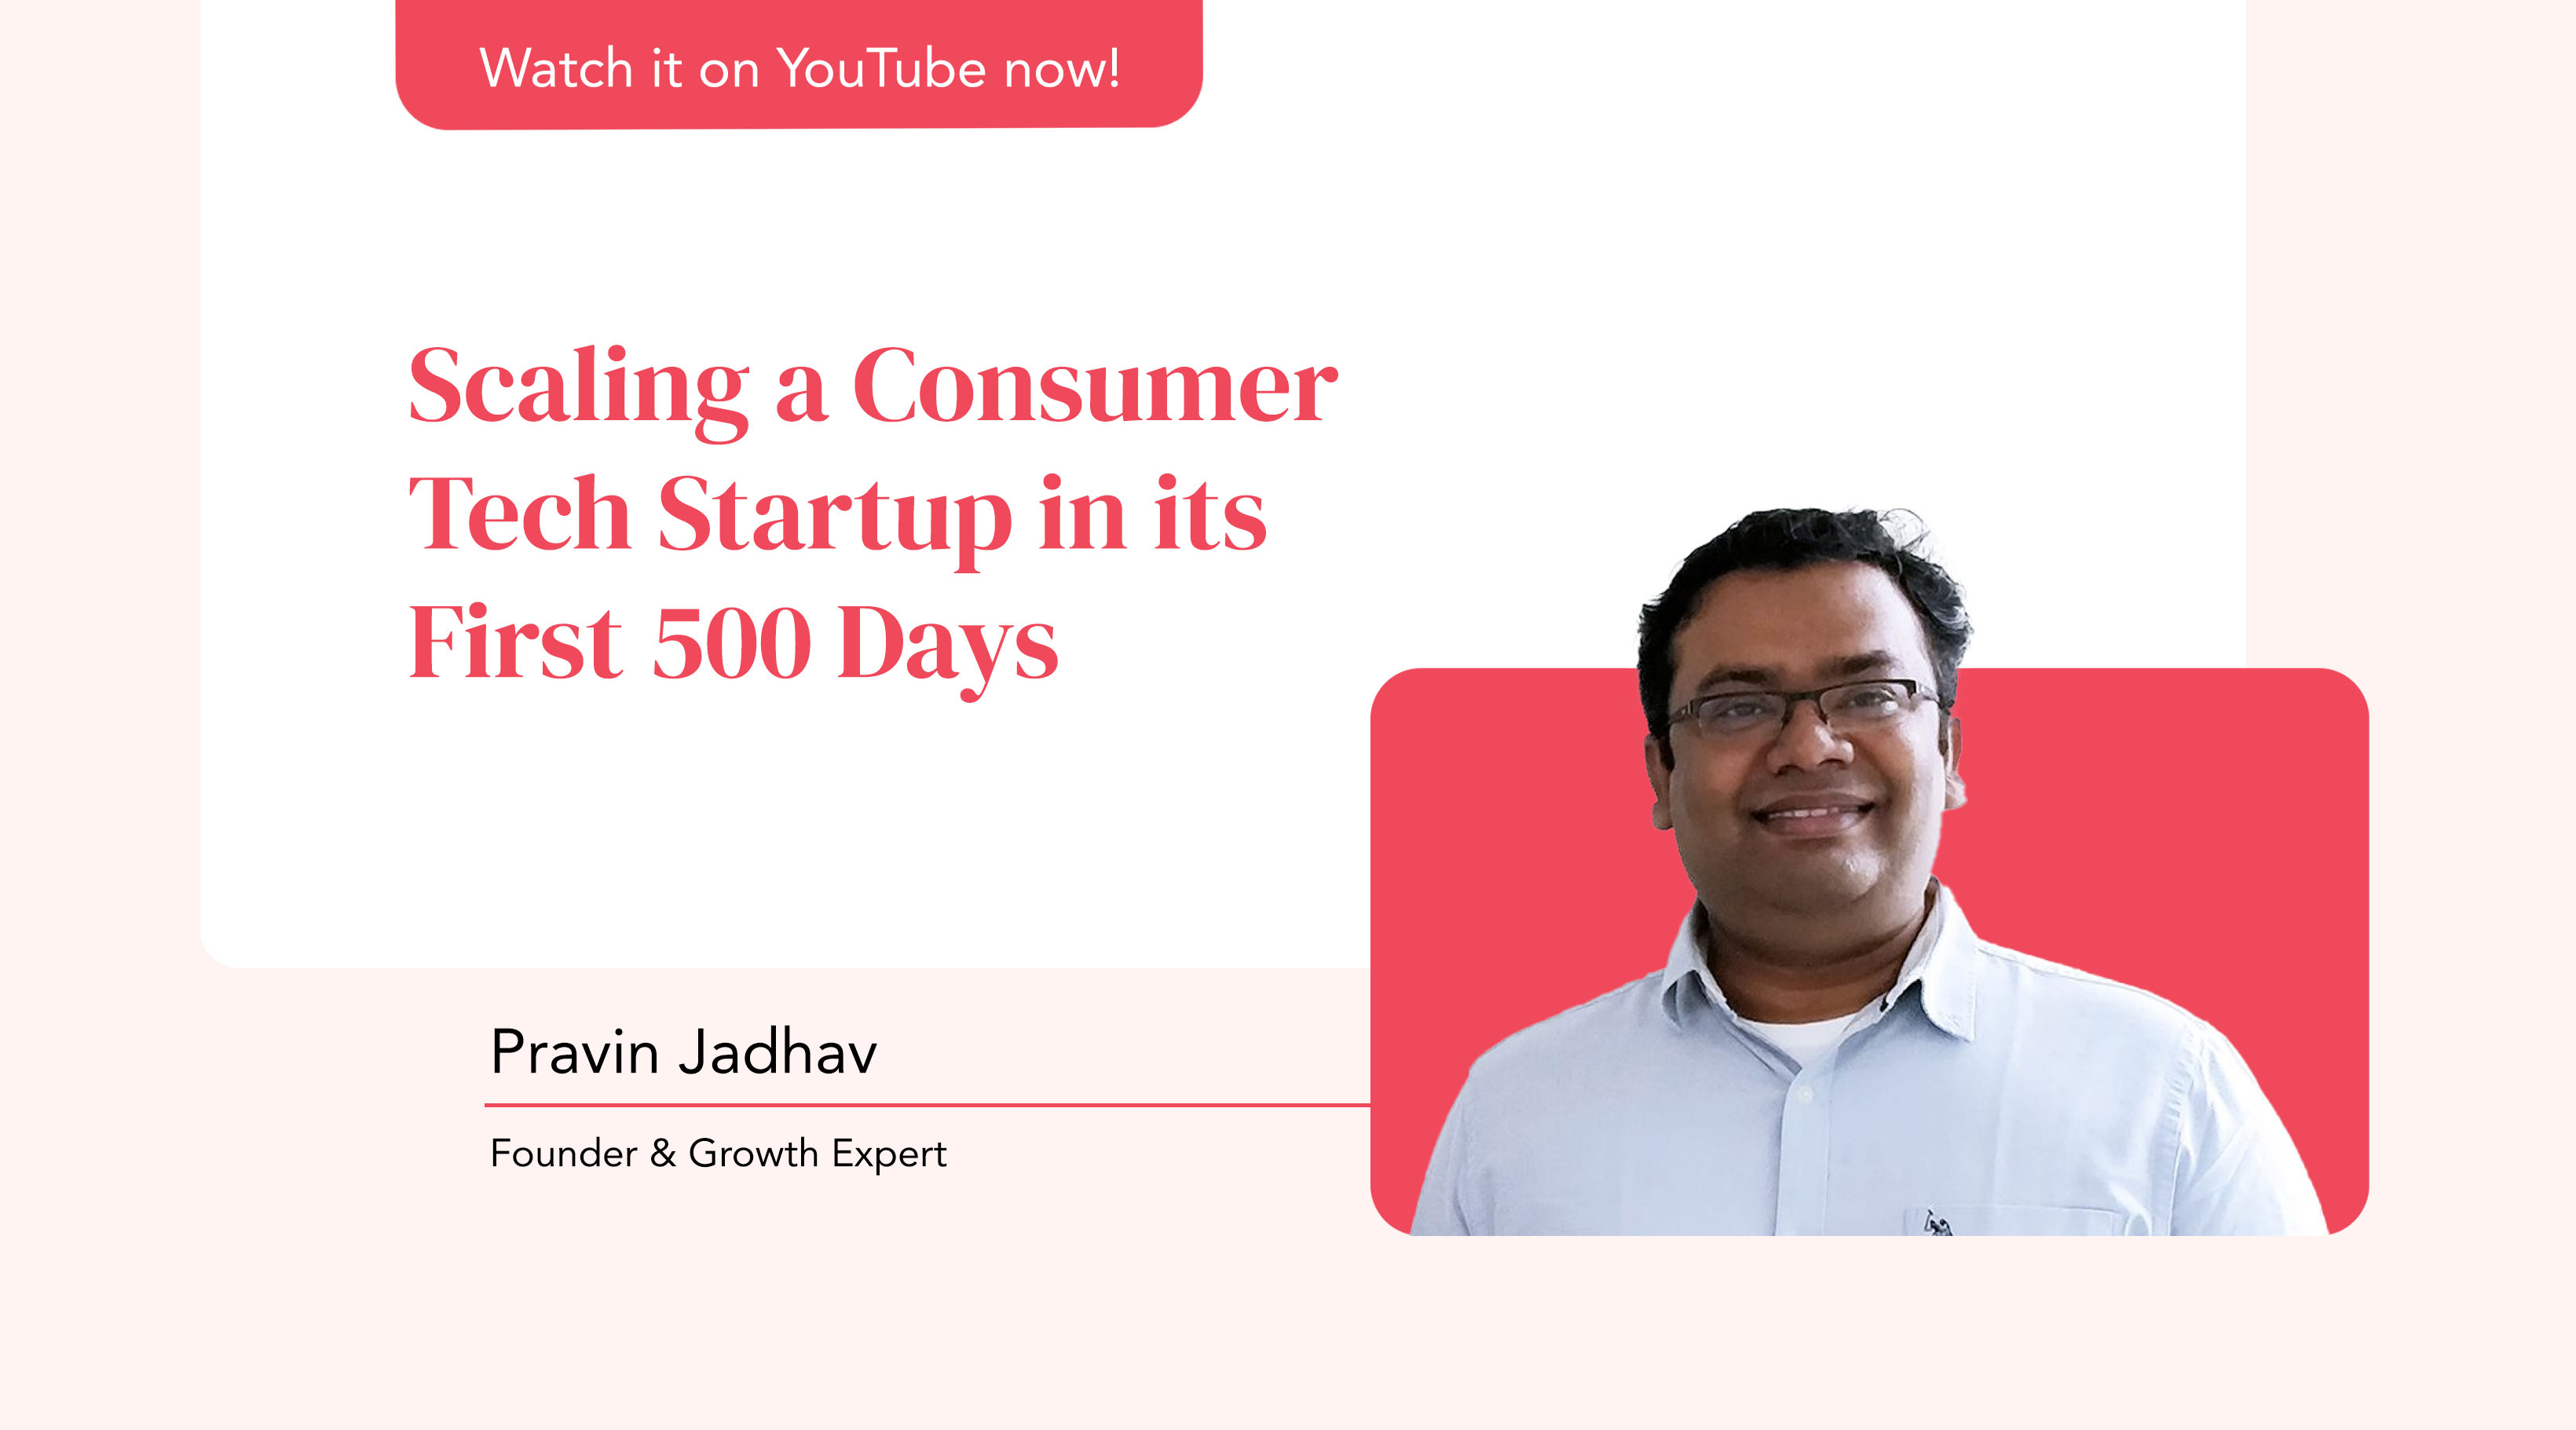 Scaling a Consumer Tech Startup in its First 500 Days